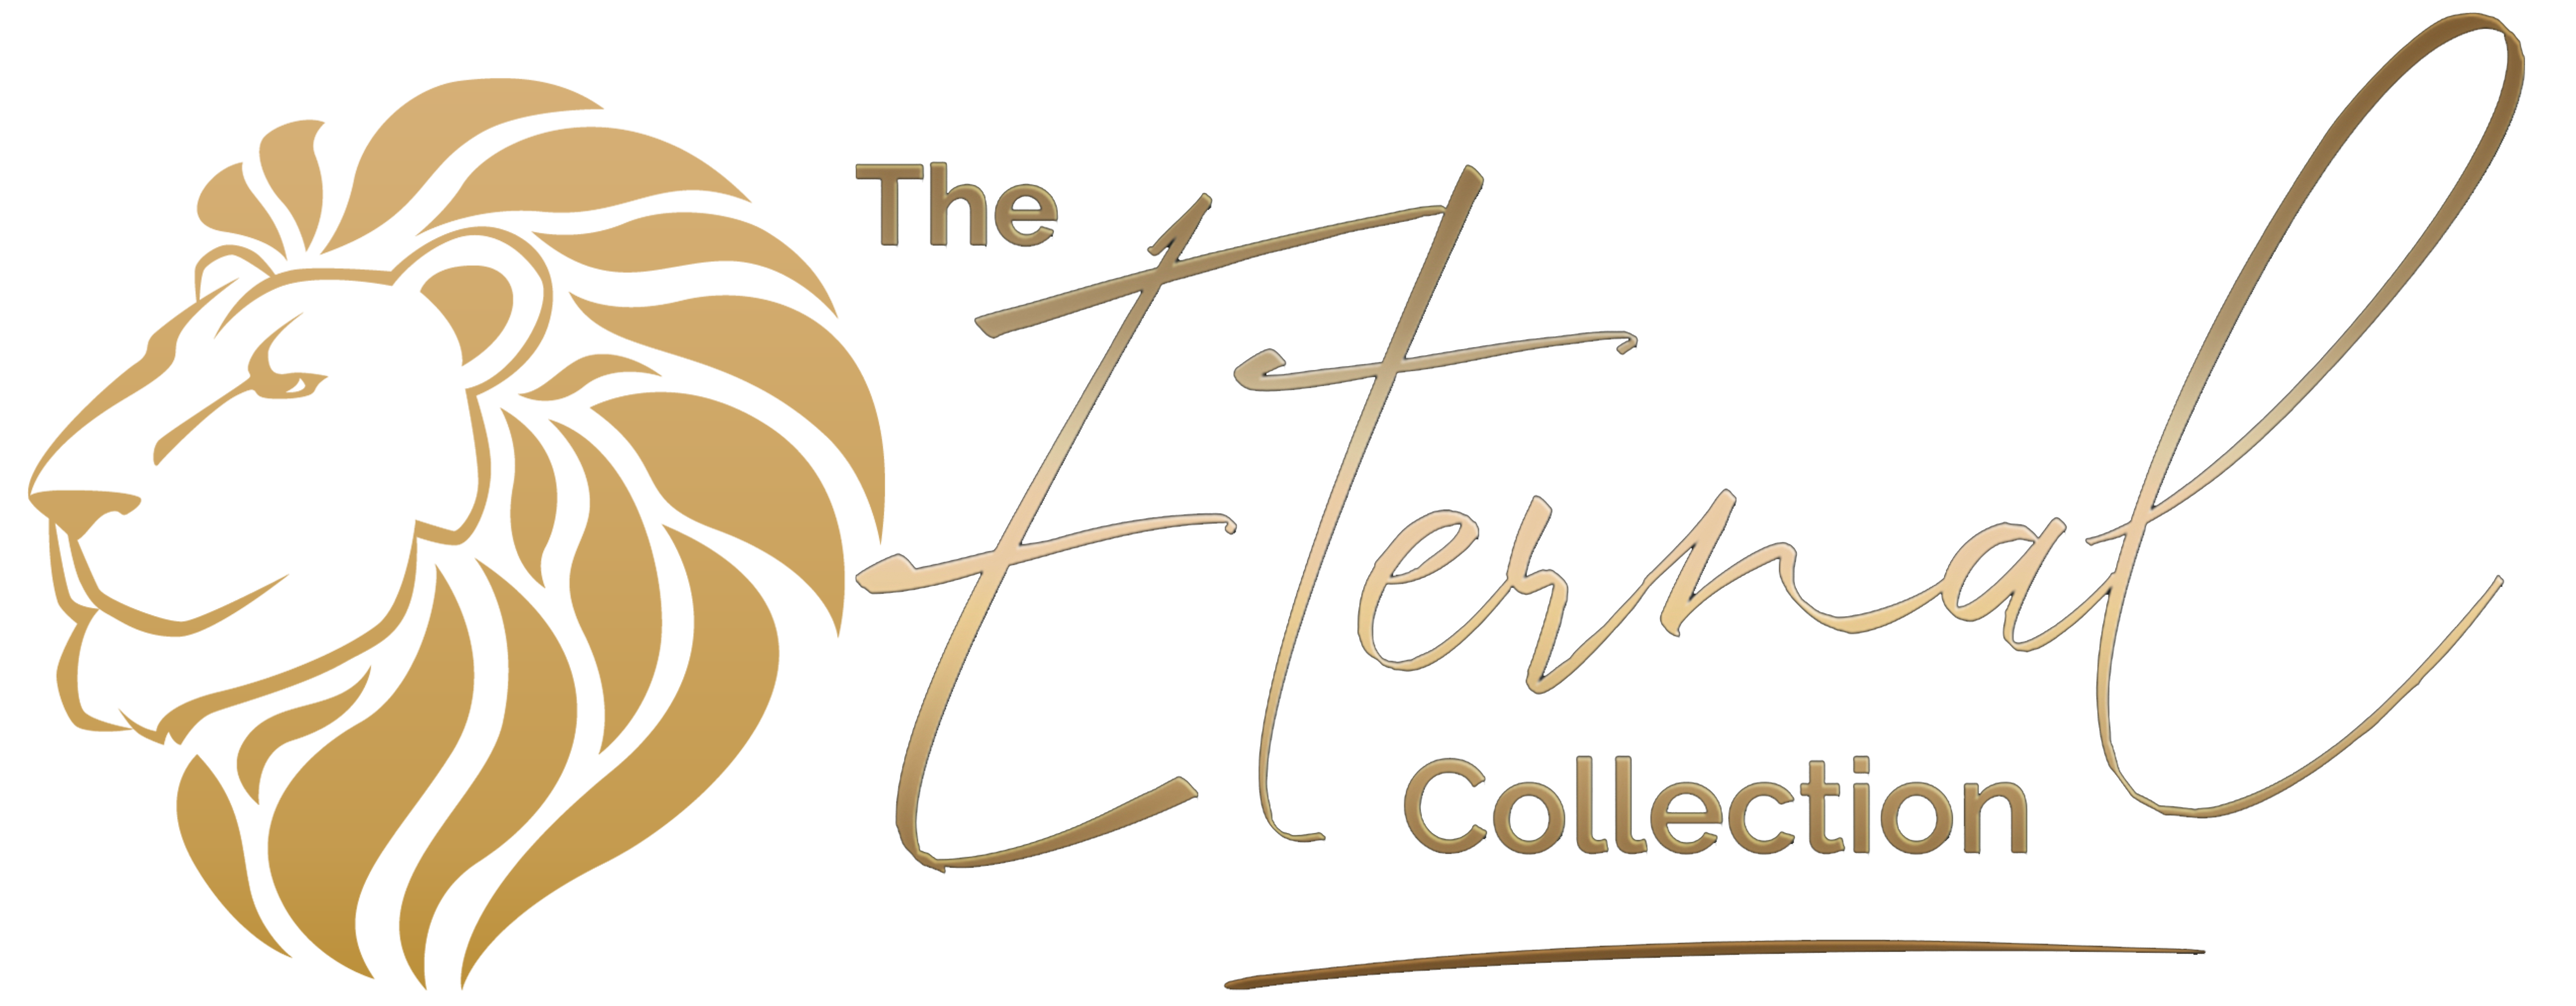 The Eternal Collection